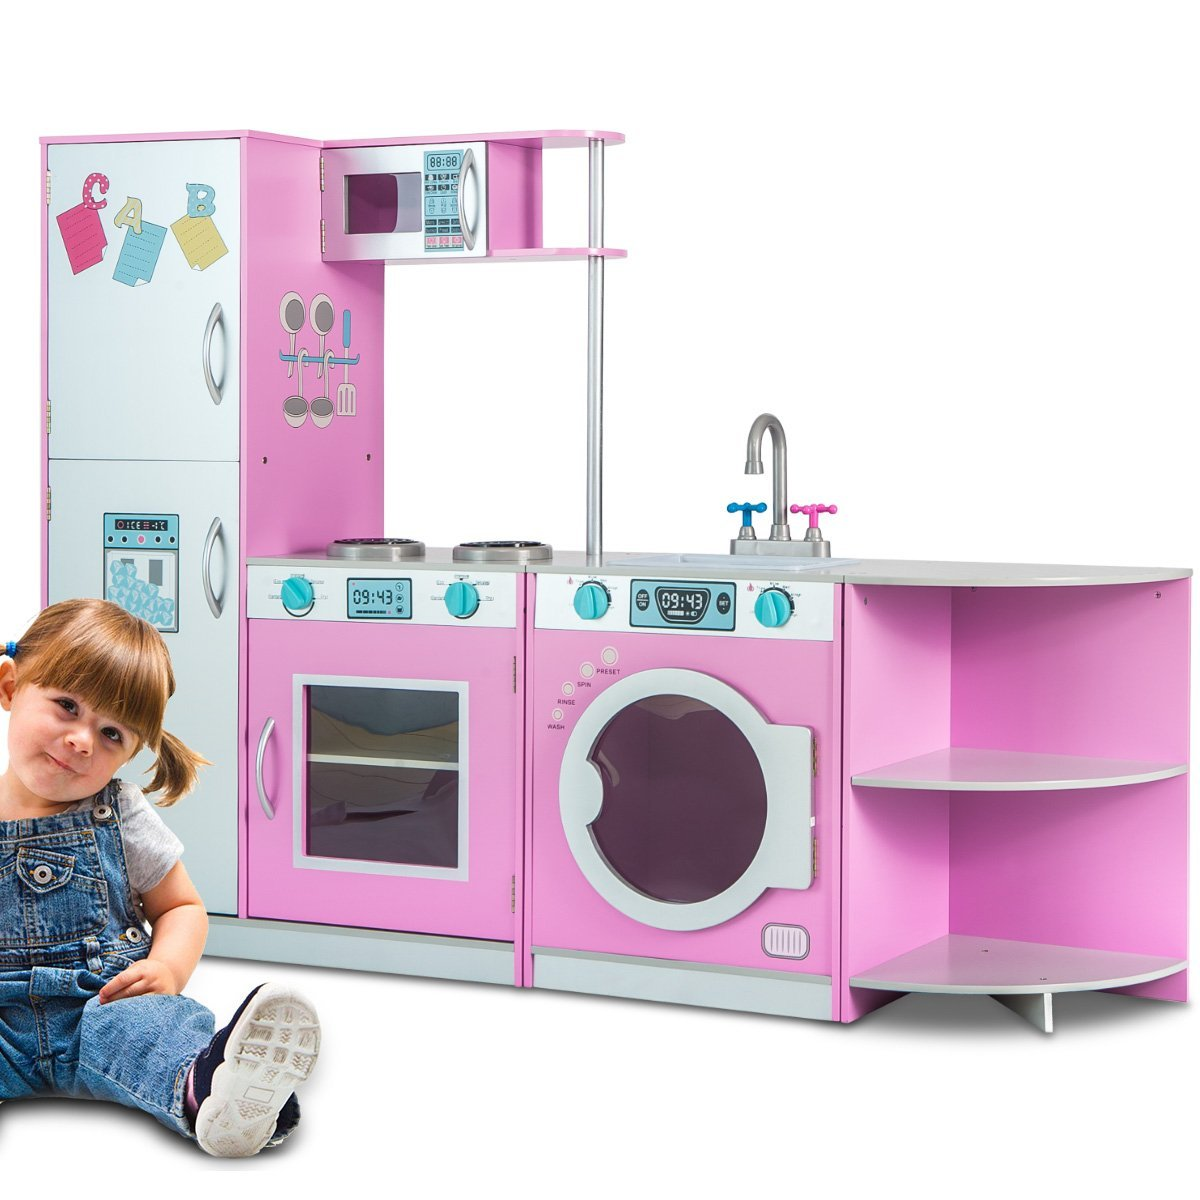 Merax Deluxe Kitchen PlaySet Role PlaySet For Kids, Free Combination Style (Pink) by Merax